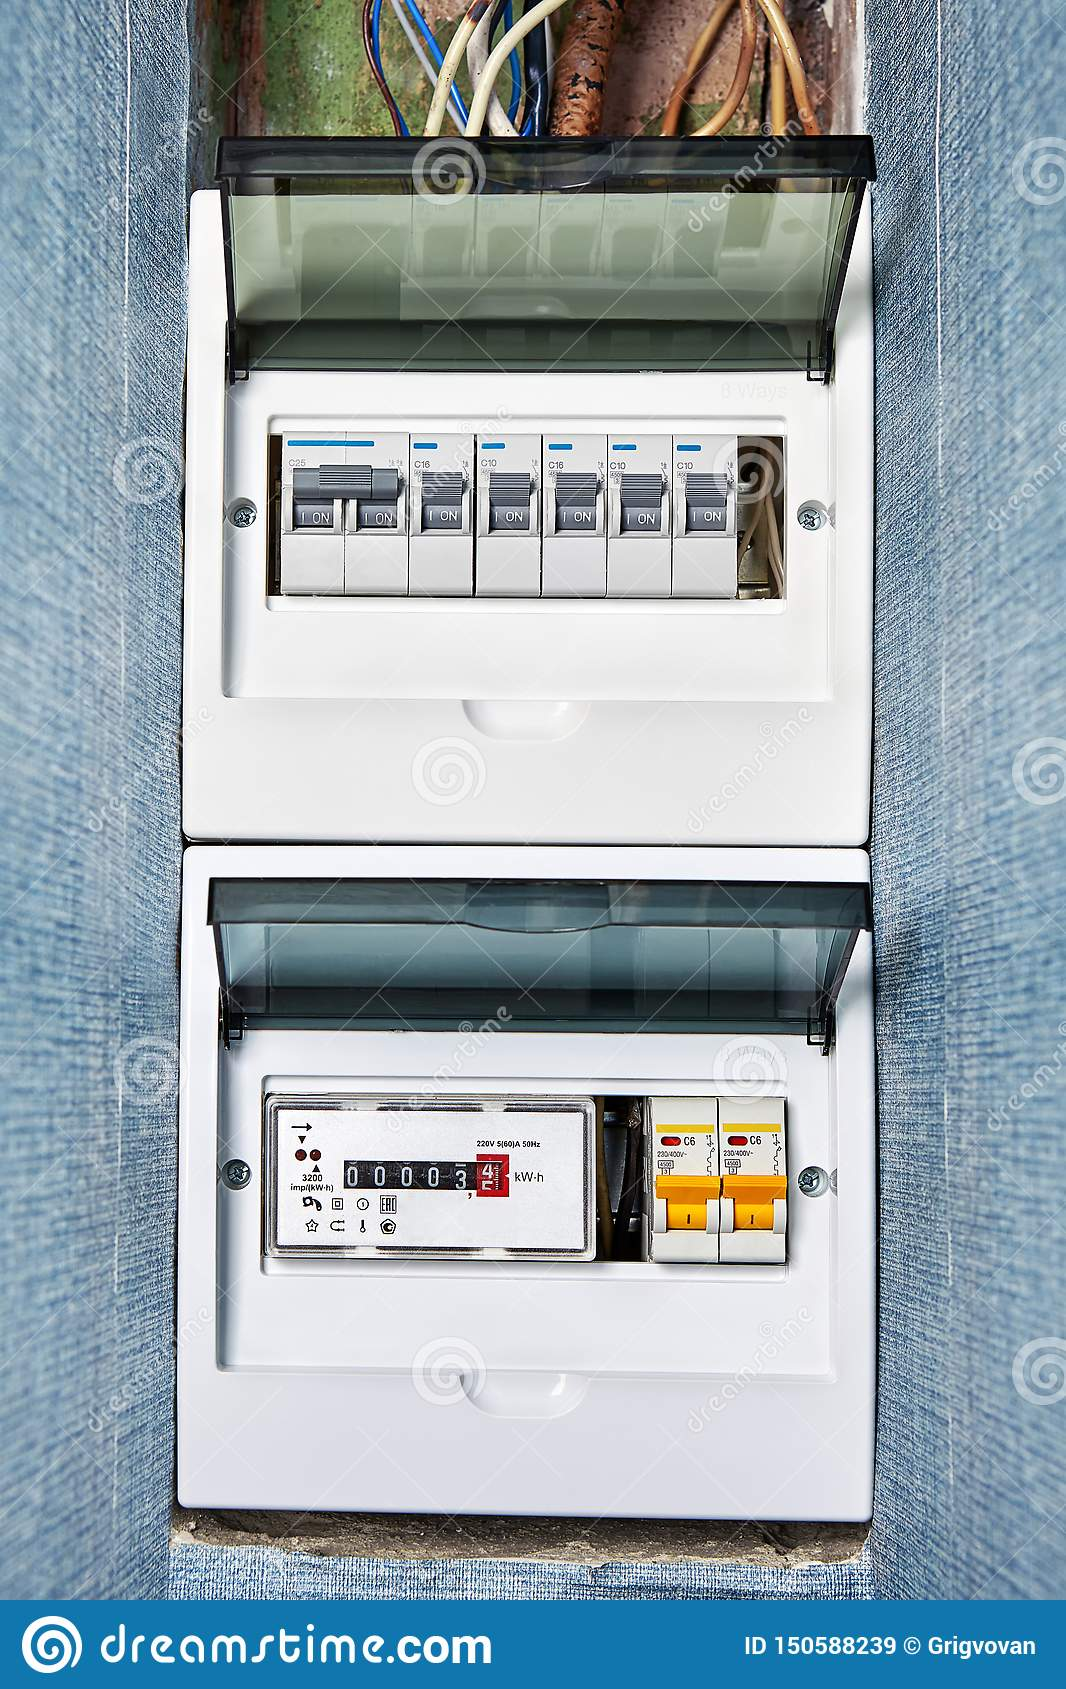 Wiring Diagram Of House Electrical Fuse Box Stock Image